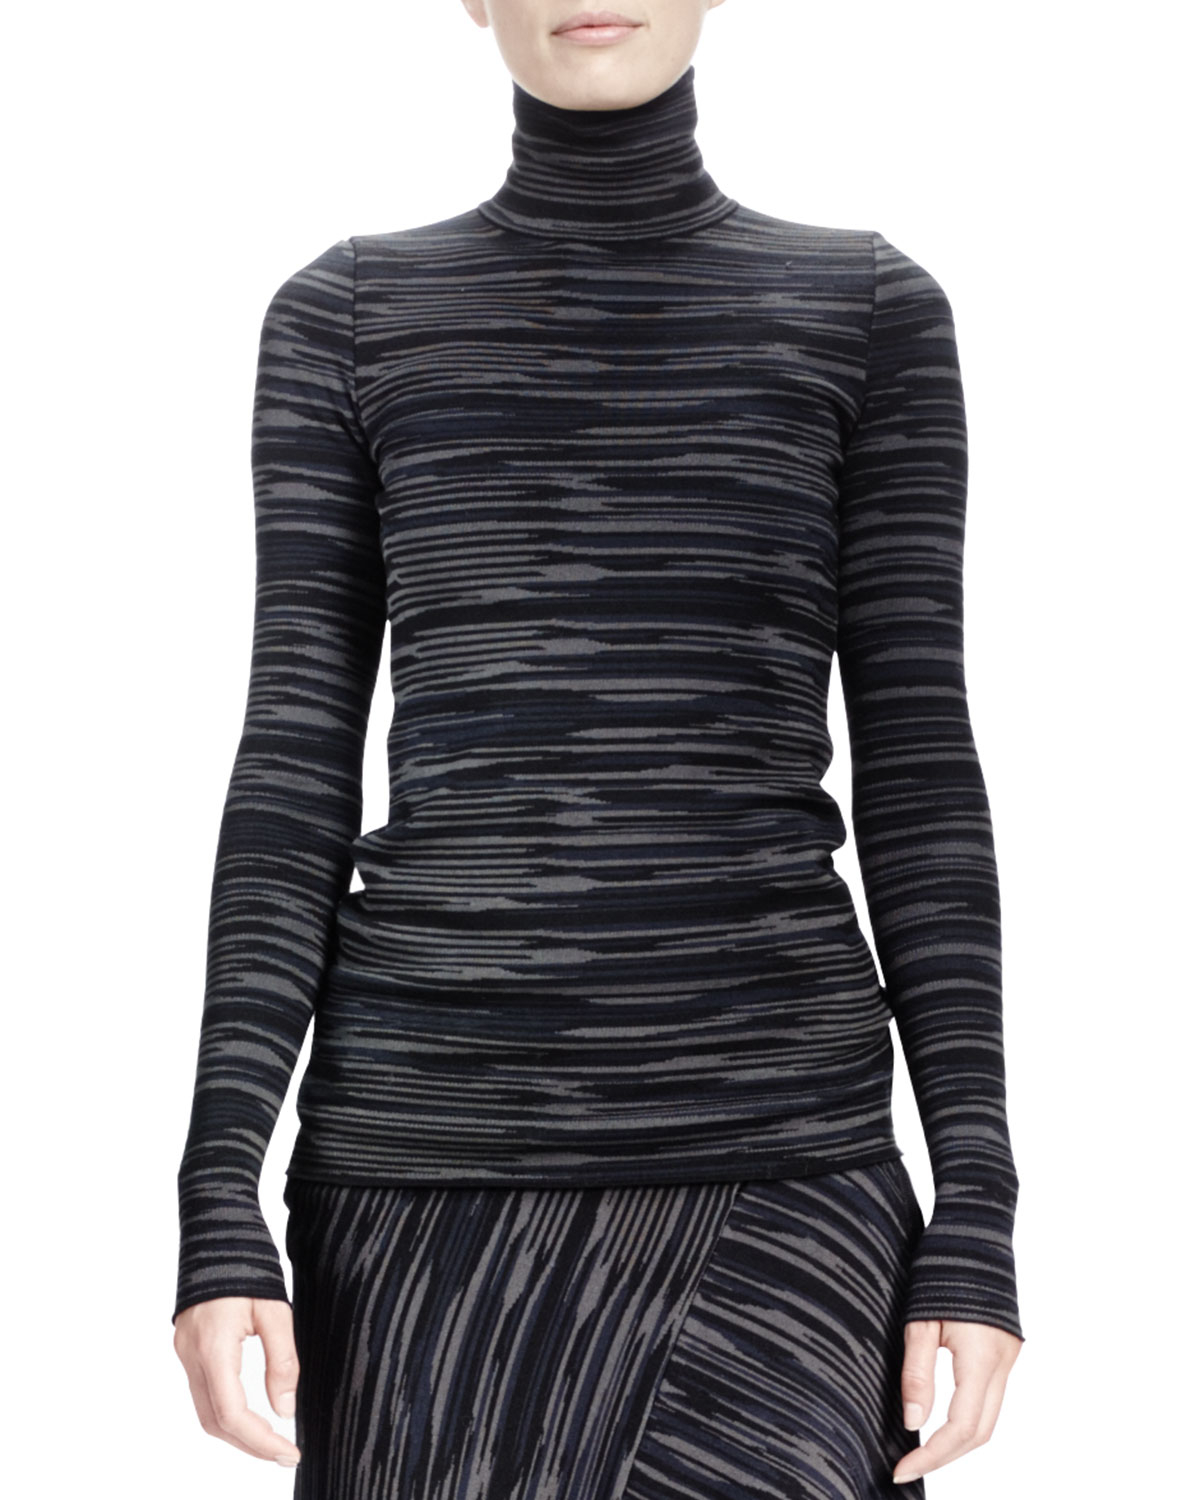 Stella mccartney long sleeve space dyed turtleneck top in for Adam lippes women s long sleeve vee t shirt